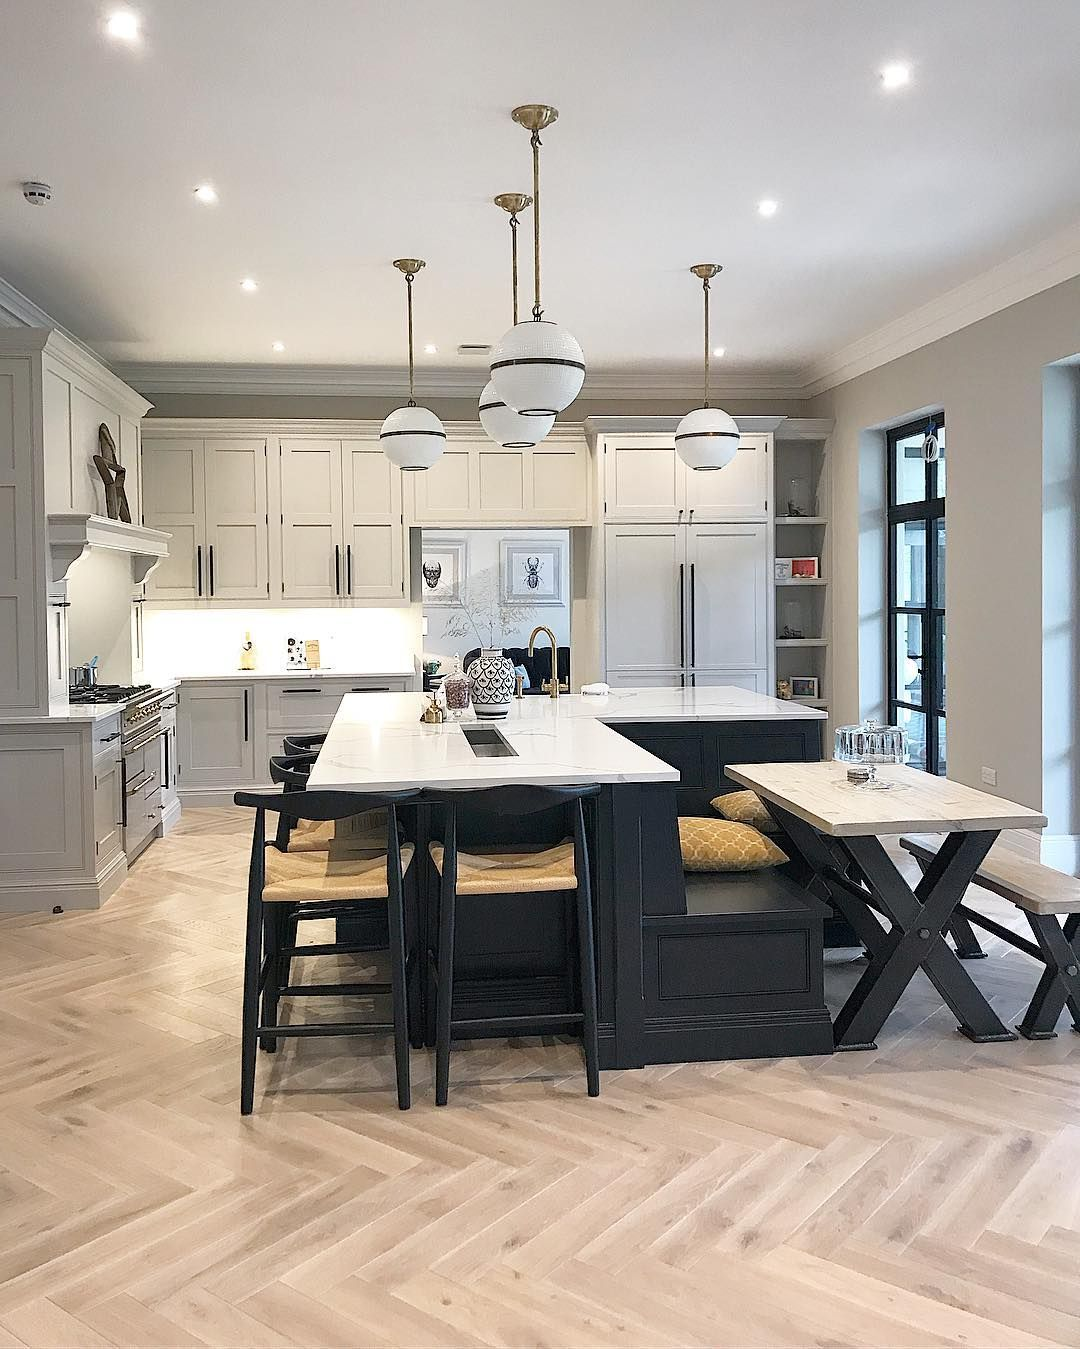 Spectacular Kitchen Family Room Renovation In Leesburg: The House Renovation Instagram Accounts You Need To Be